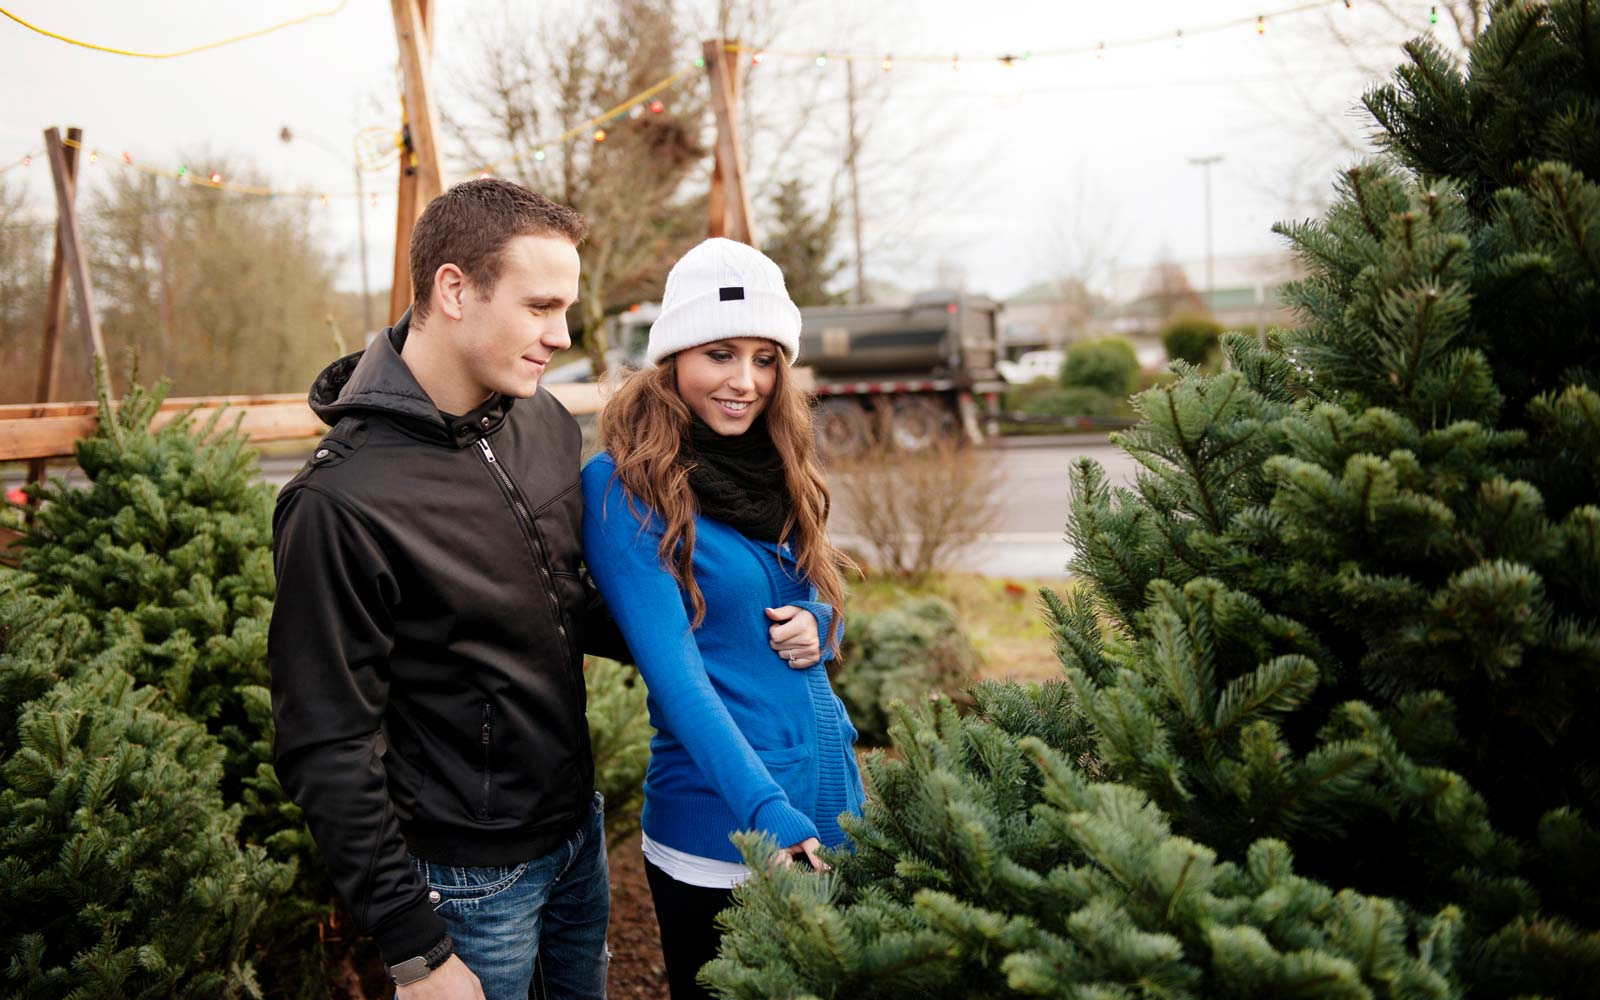 The Best and Worst Times to Buy a Christmas Tree